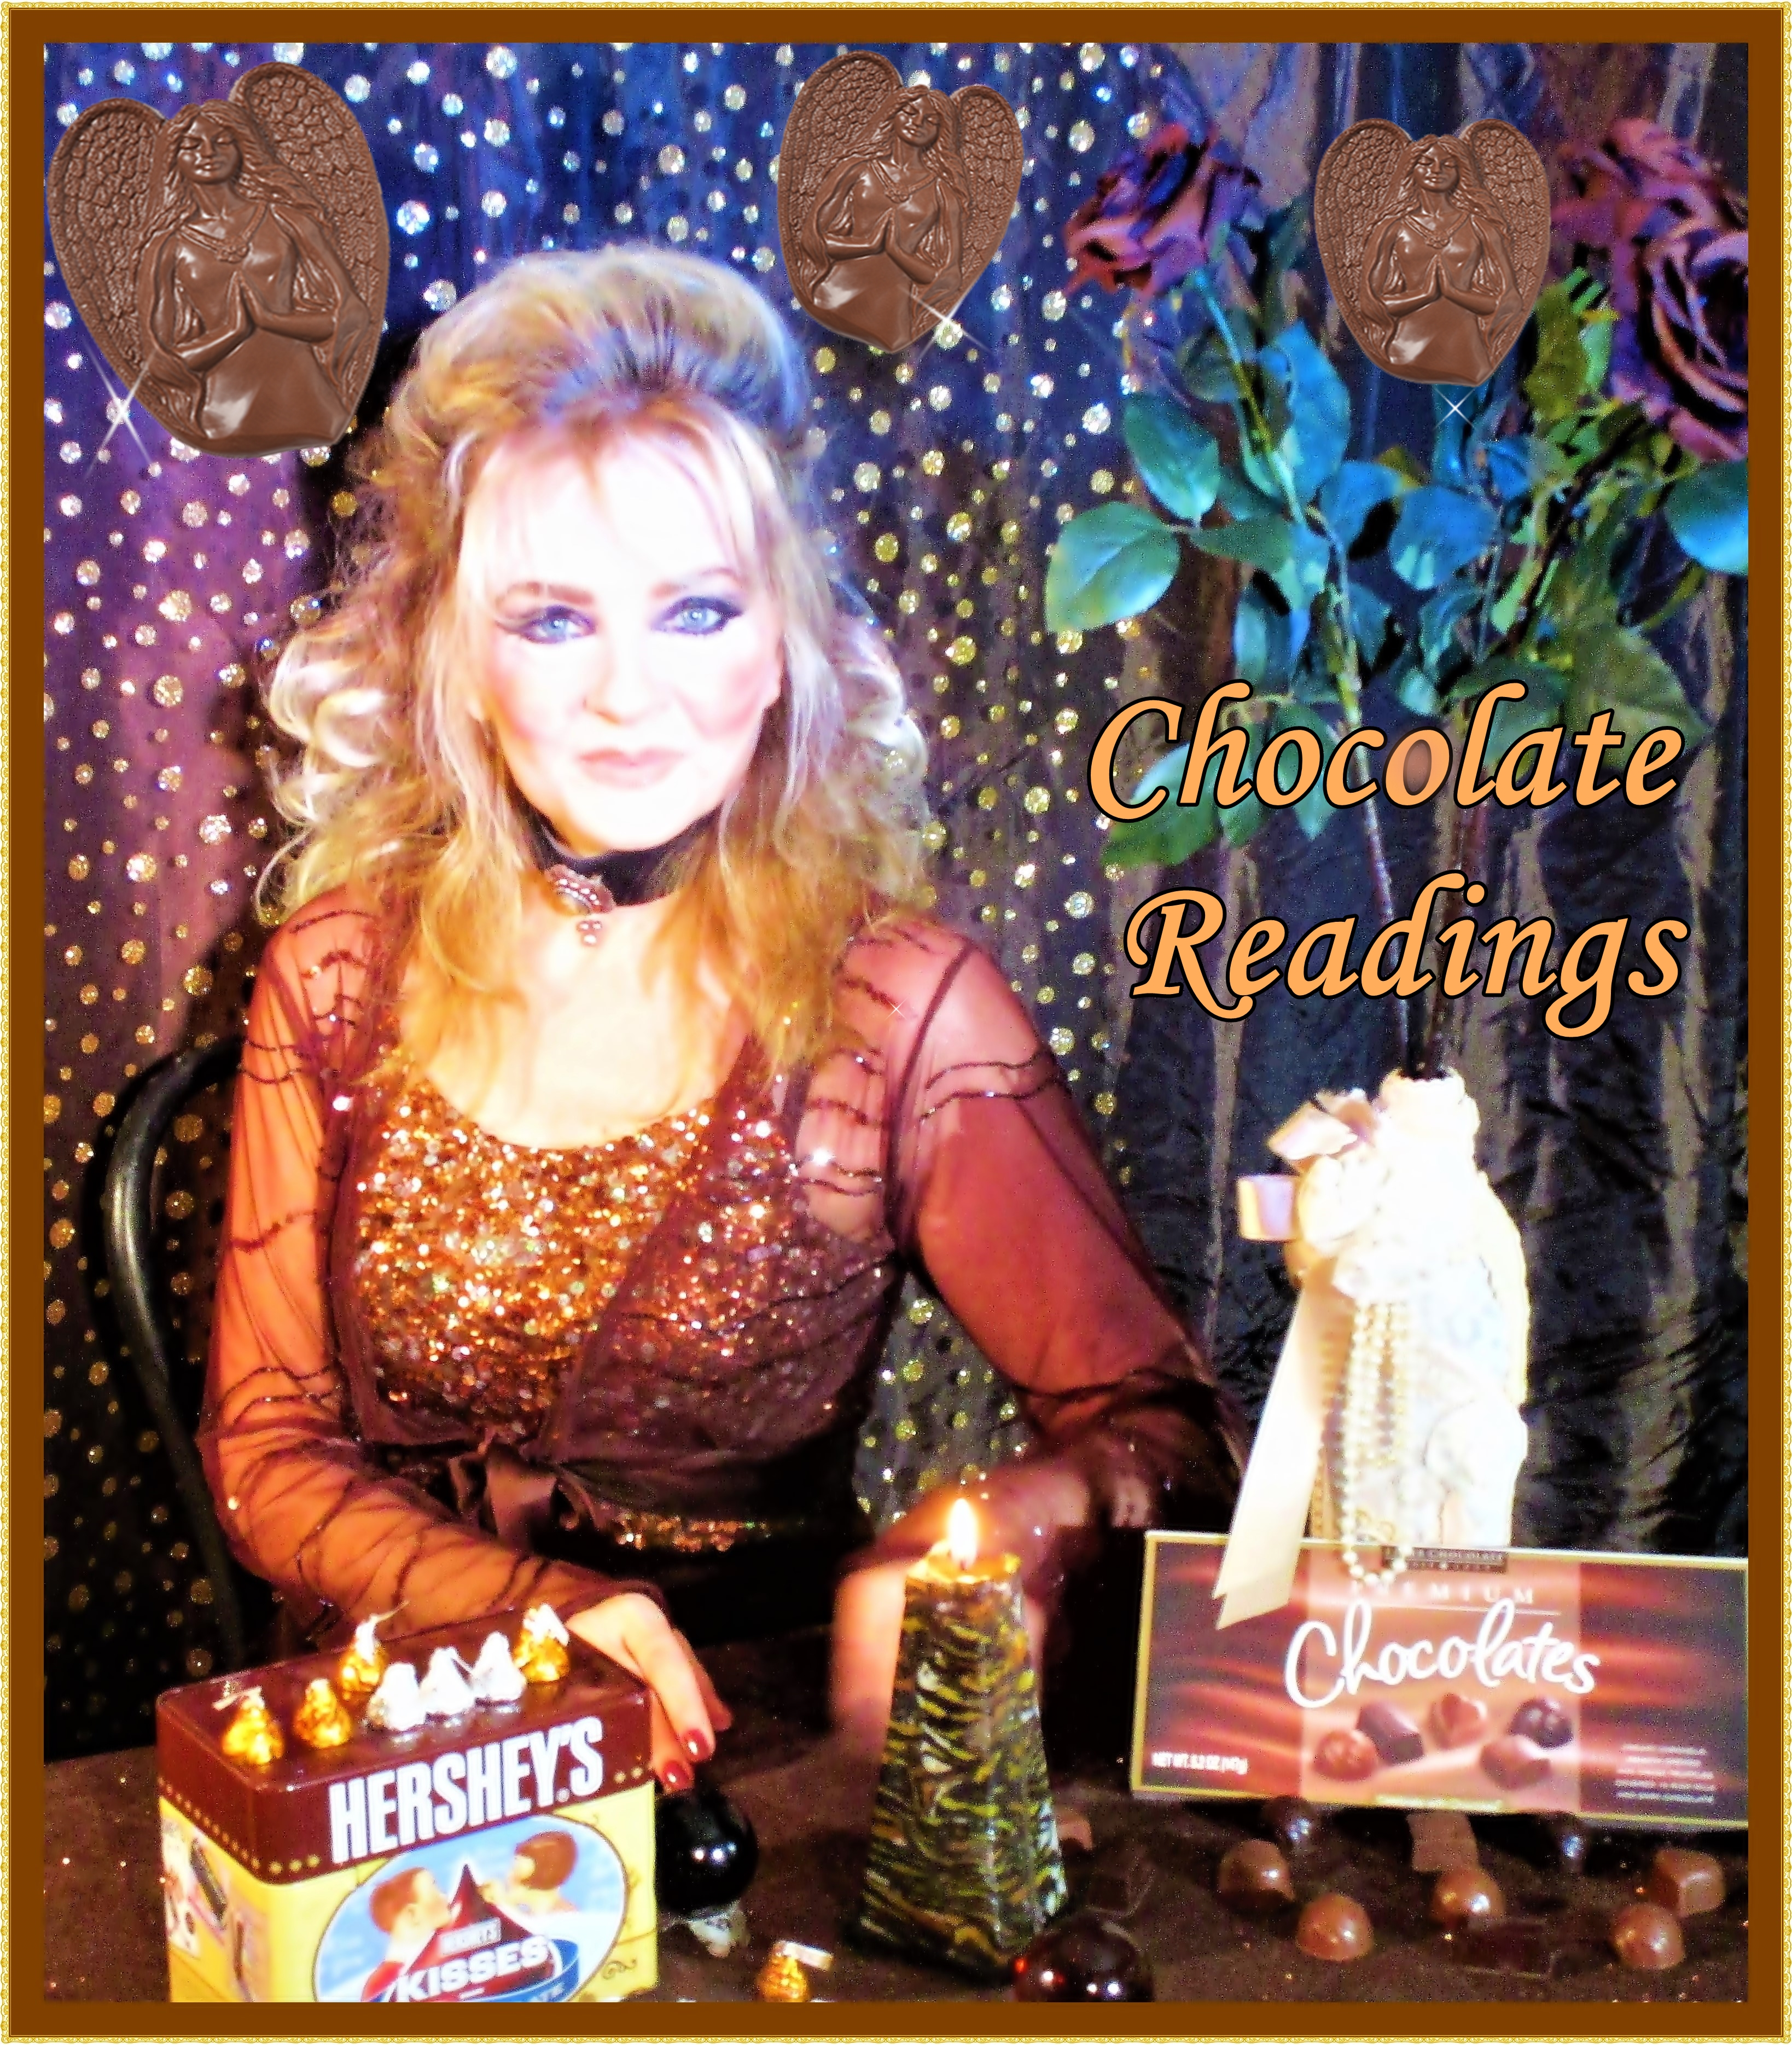 Chocolate Readings